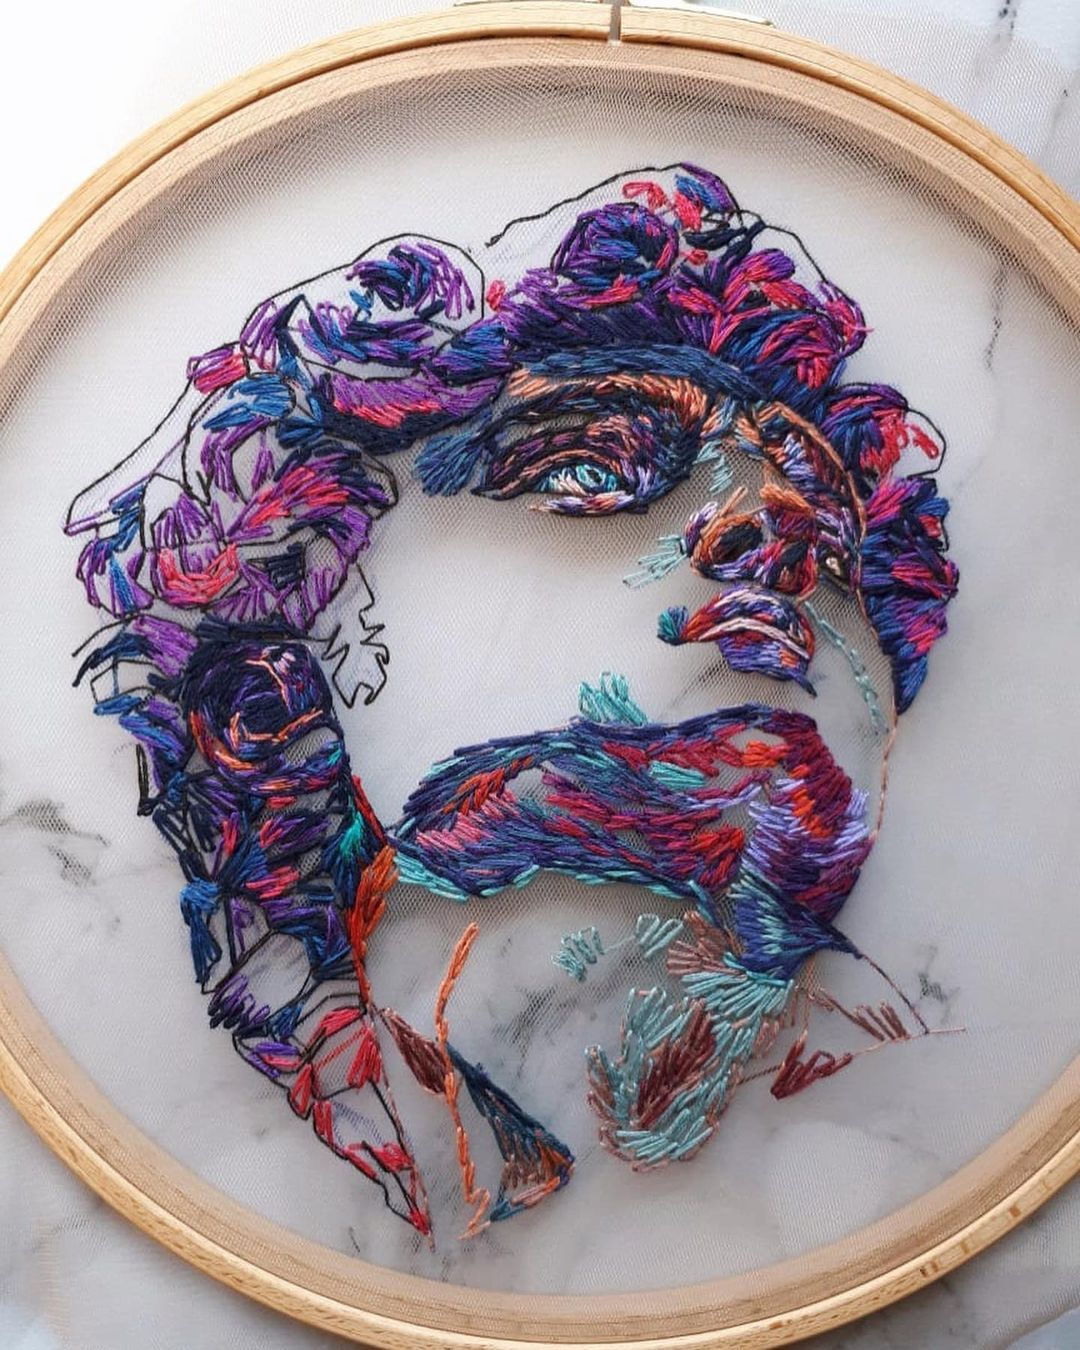 Tulle Embroidery Art by Kathrin Marchenko